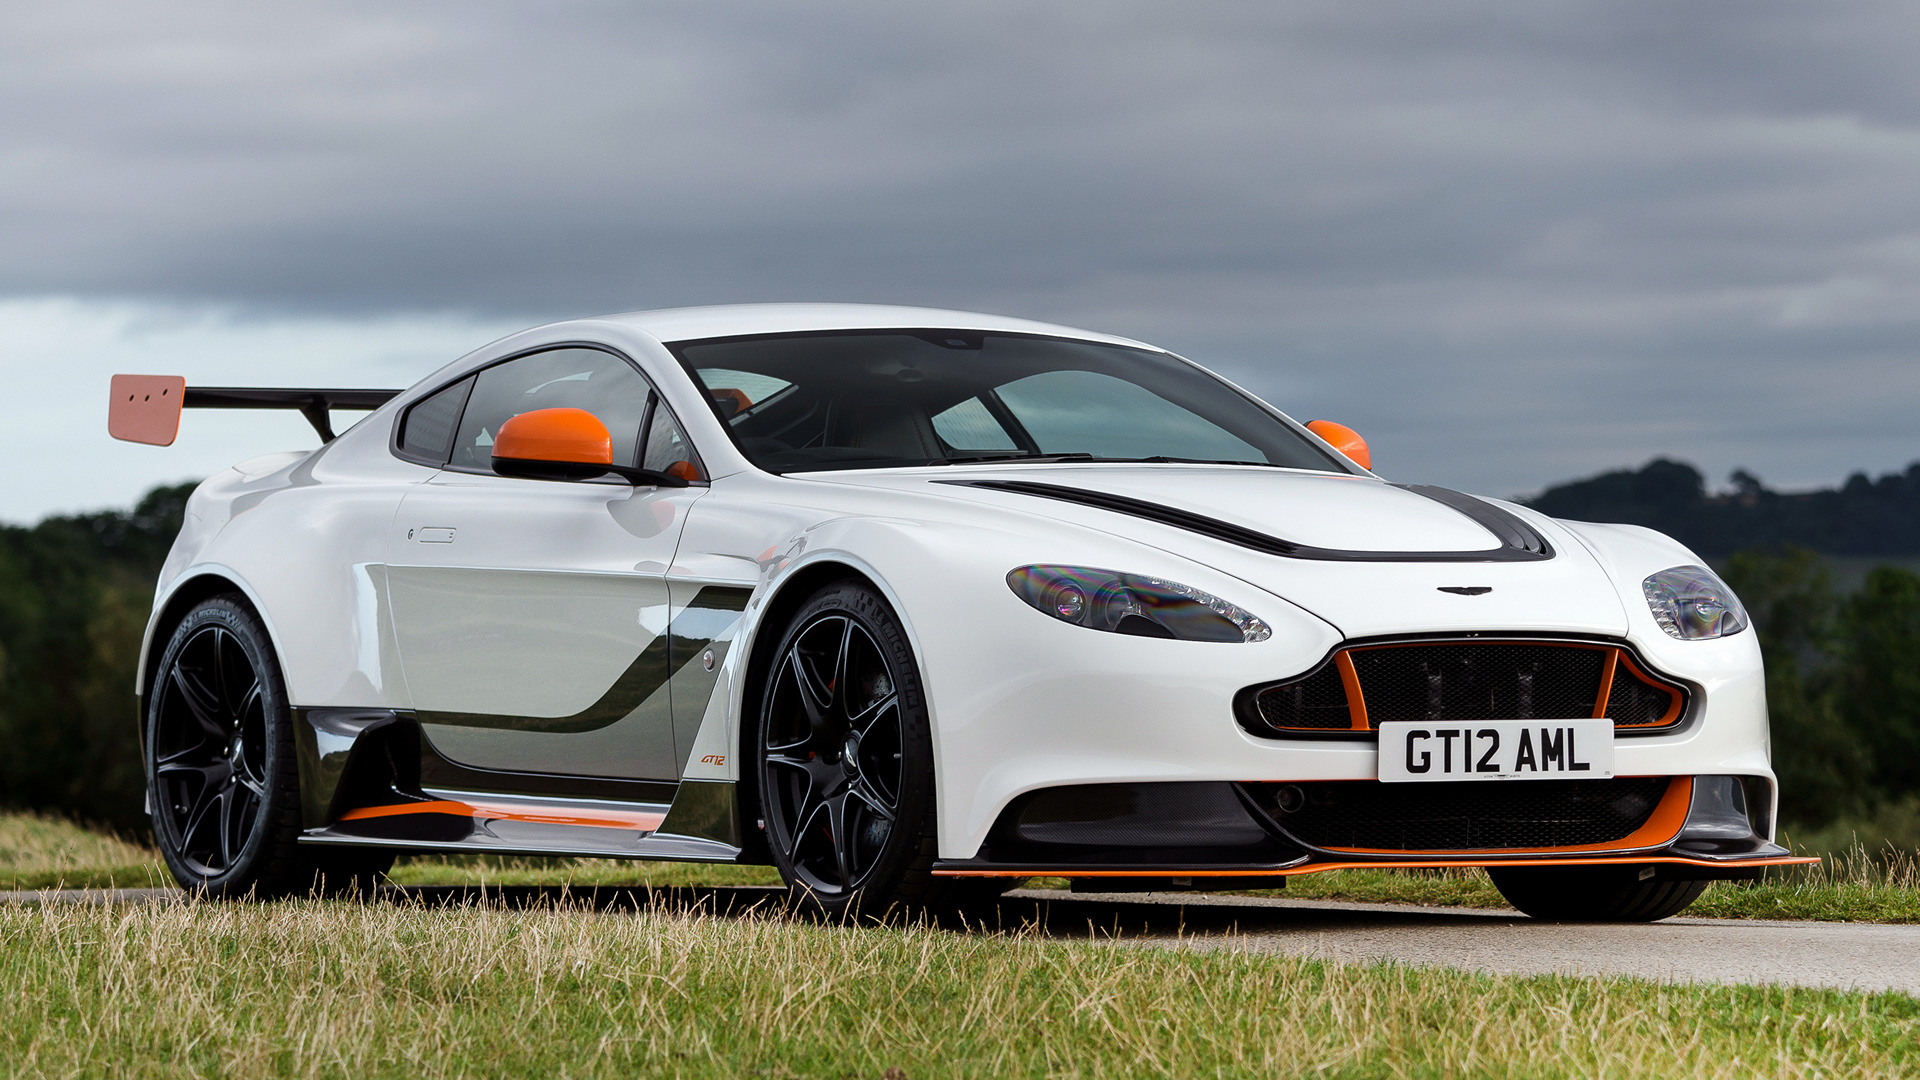 aston martin vantage gt12 2015 uk wallpapers and hd